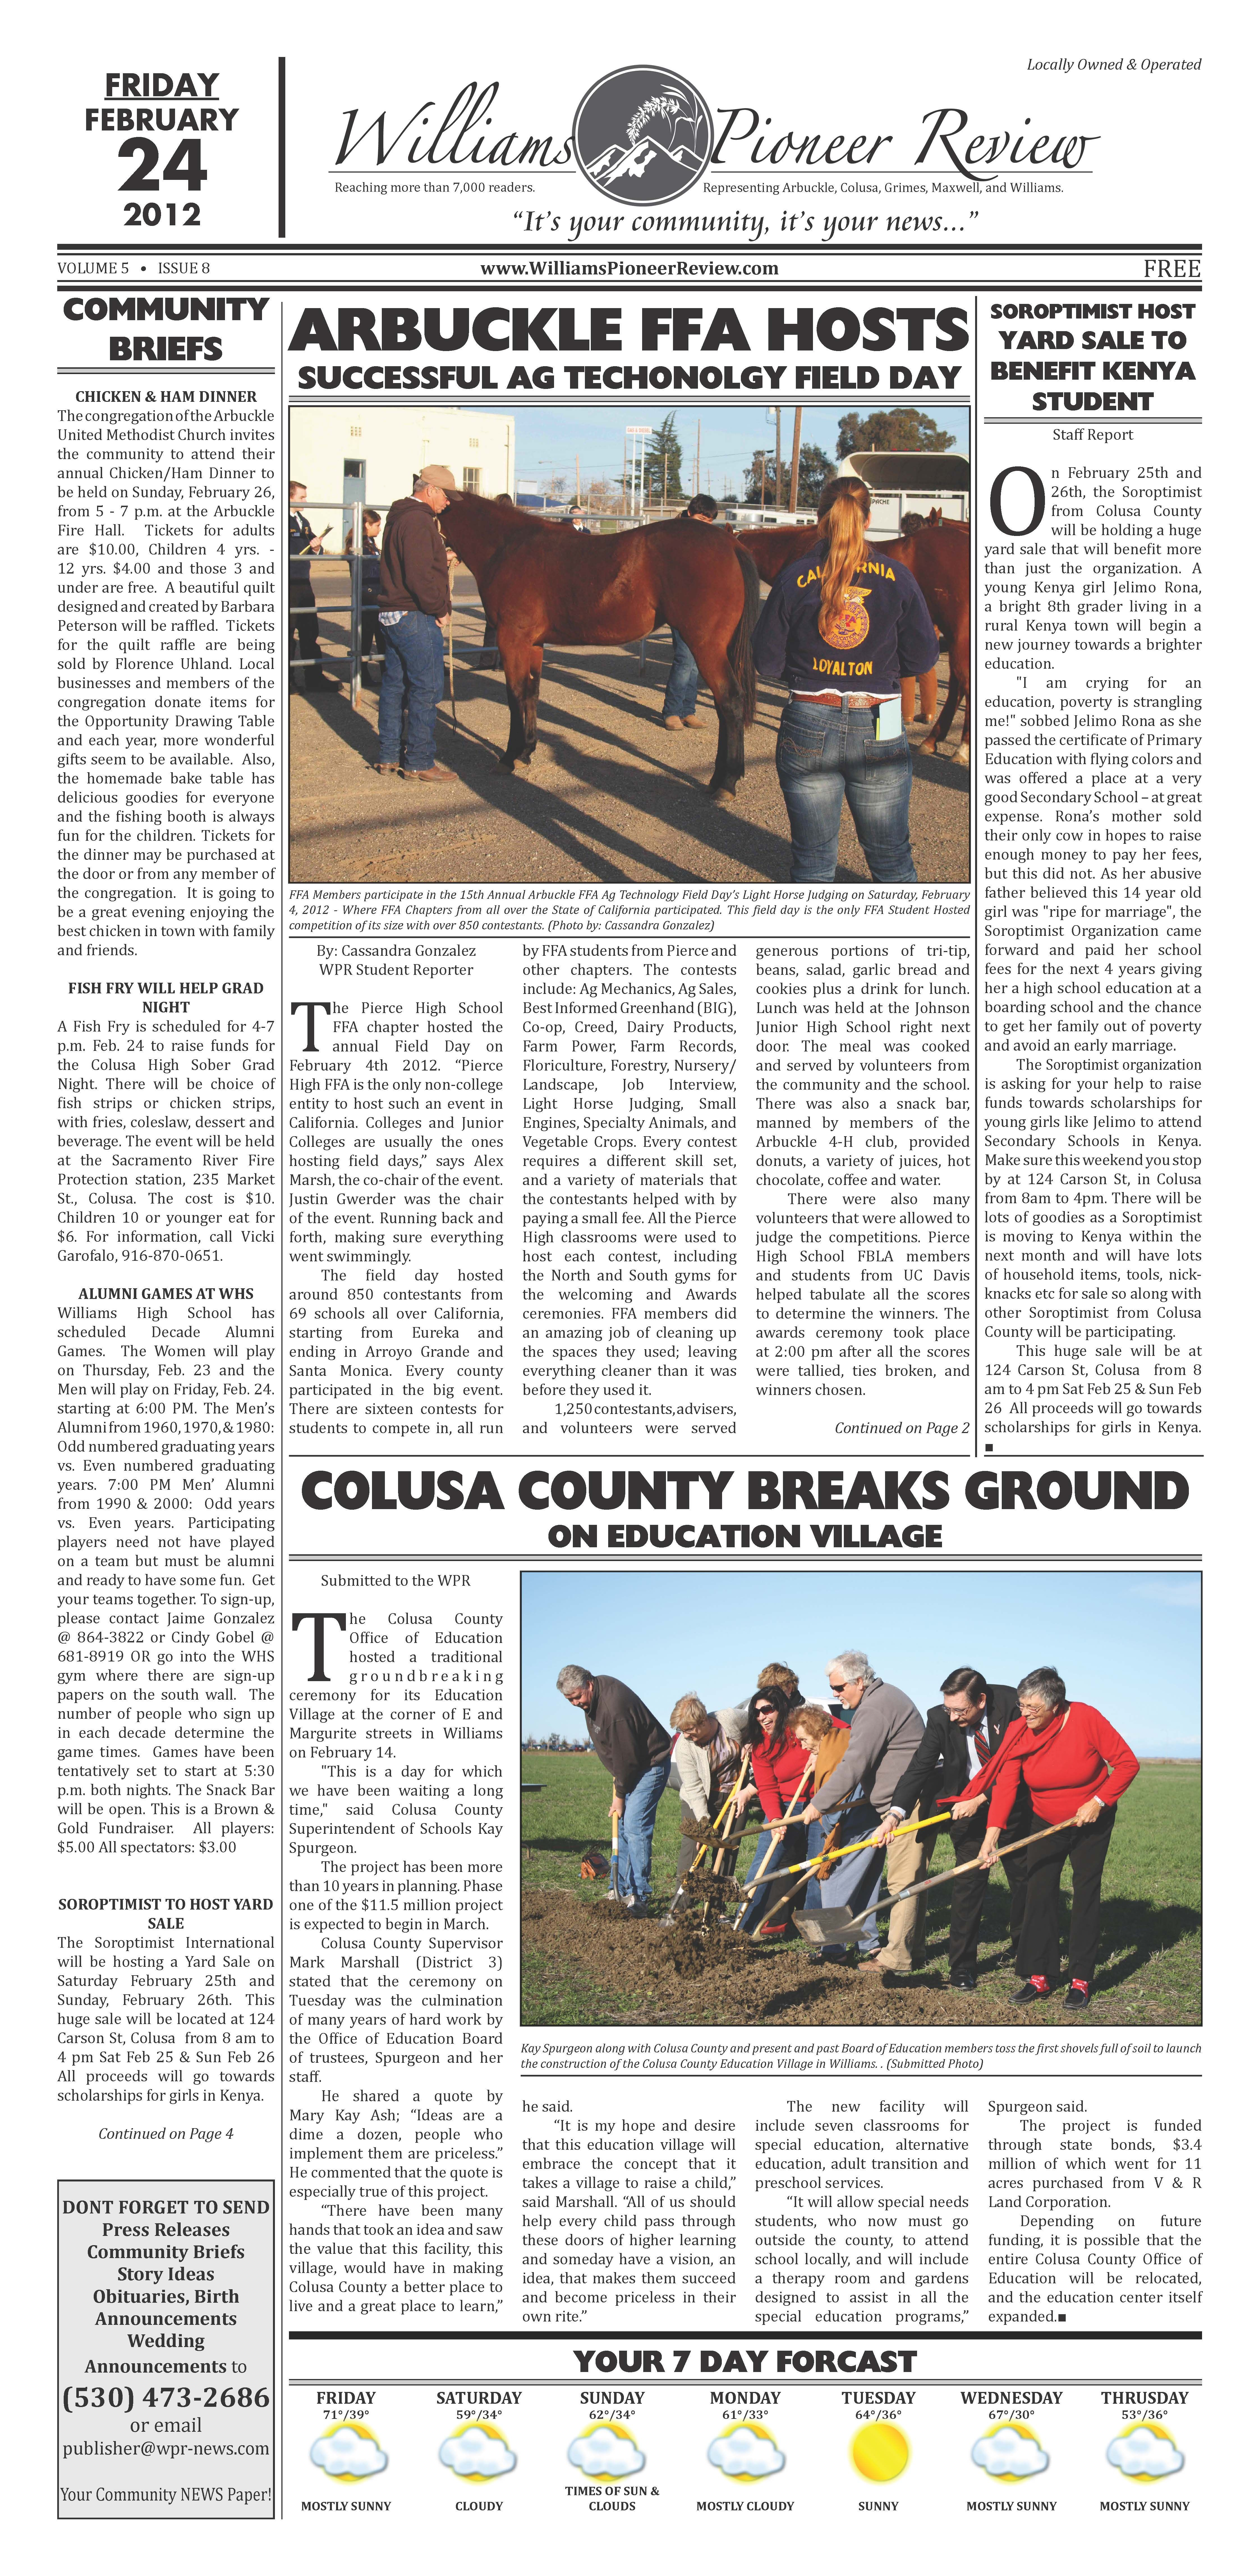 Williams Pioneer Review - Feburary 24, 2012 - Front Page